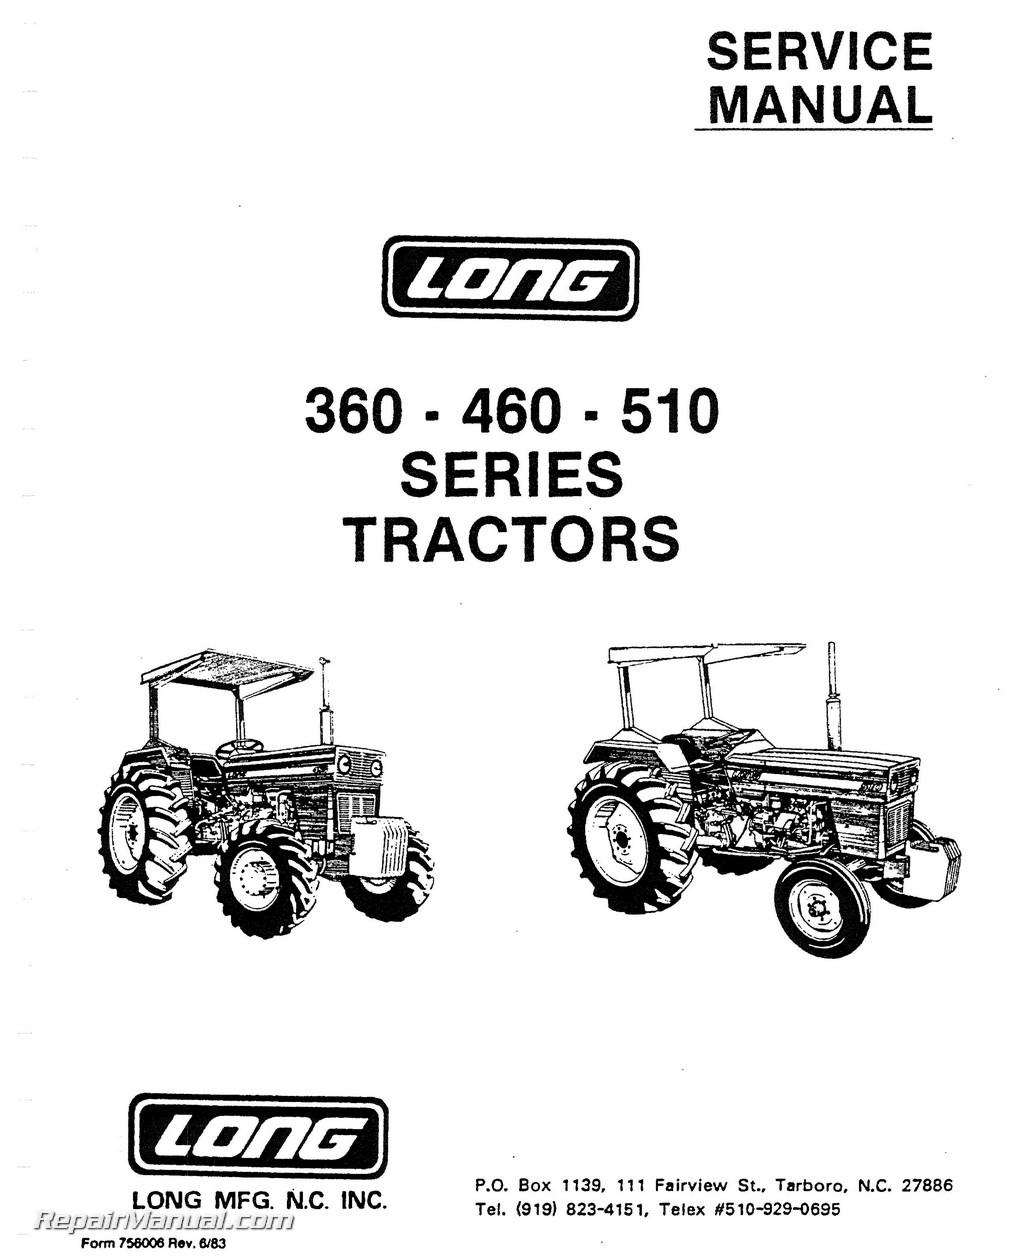 long 360 460 510 series tractor service manual rh repairmanual com tractor service manuals free download tractor service manual mediafire